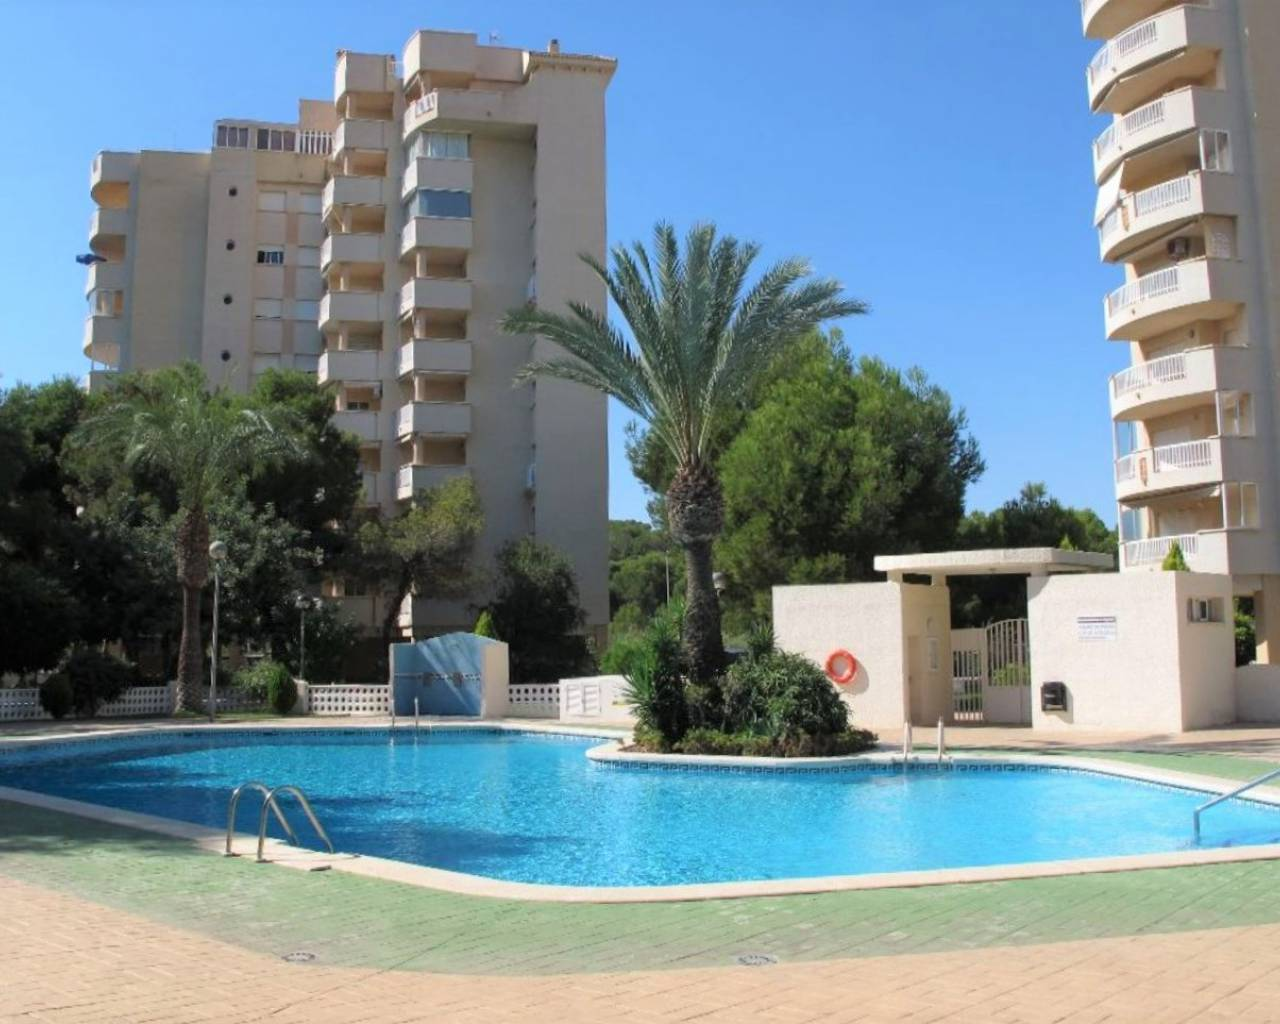 Apartment - Sale - Campoamor - Campoamor